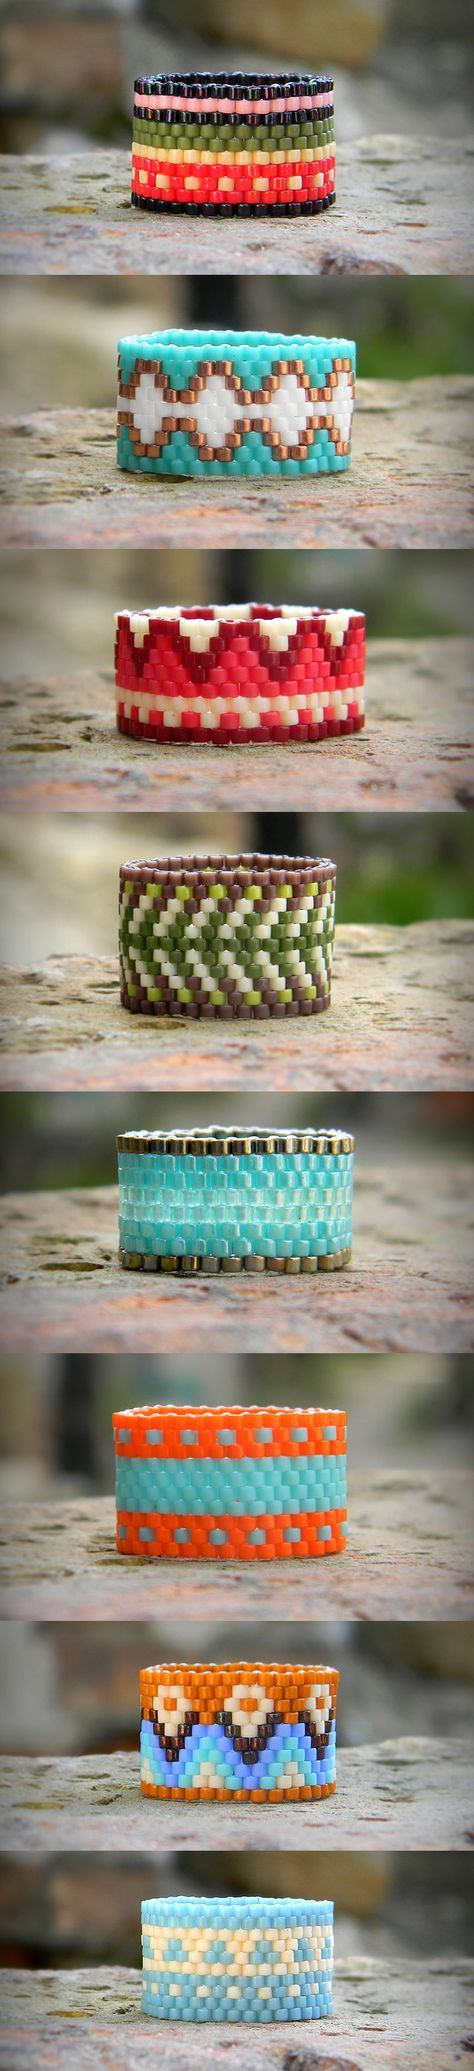 Peyote rings Seed Bead rings Wide band rings delica bead rings beaded rings beadwoven rings #beadwork #beading #peyotestitch #jewelry